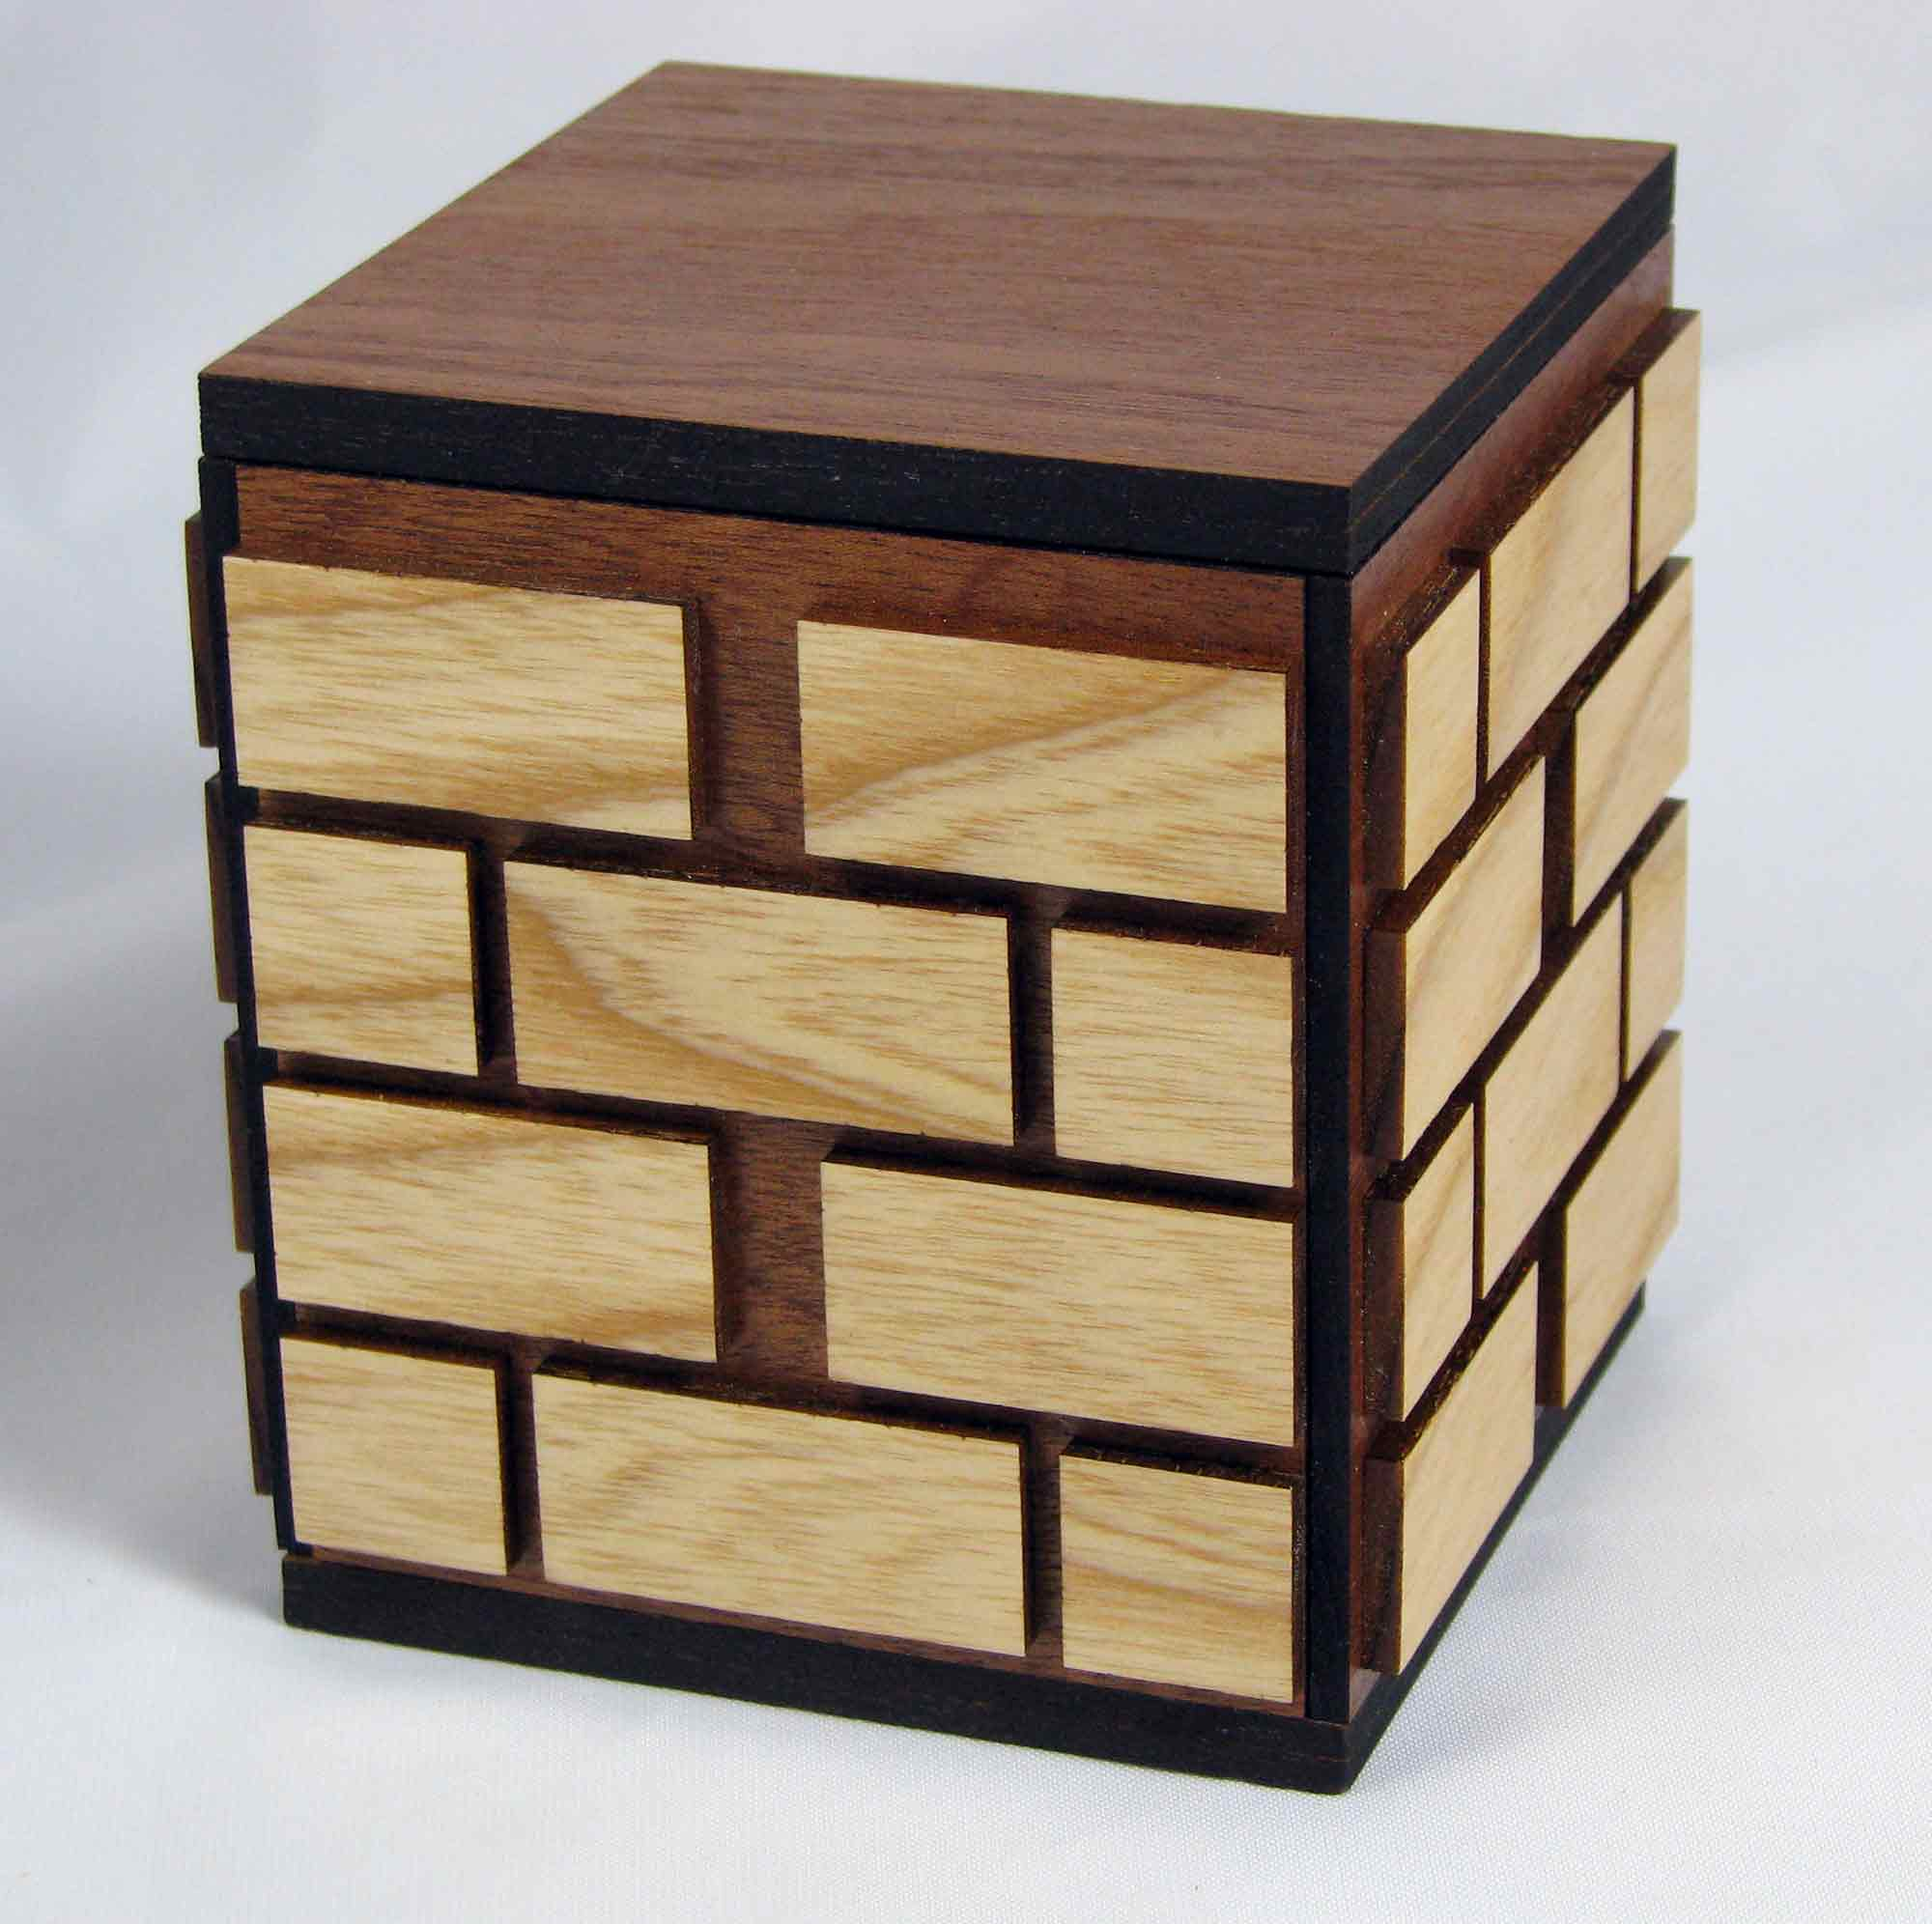 free japanese puzzle box plans | diywoodplans